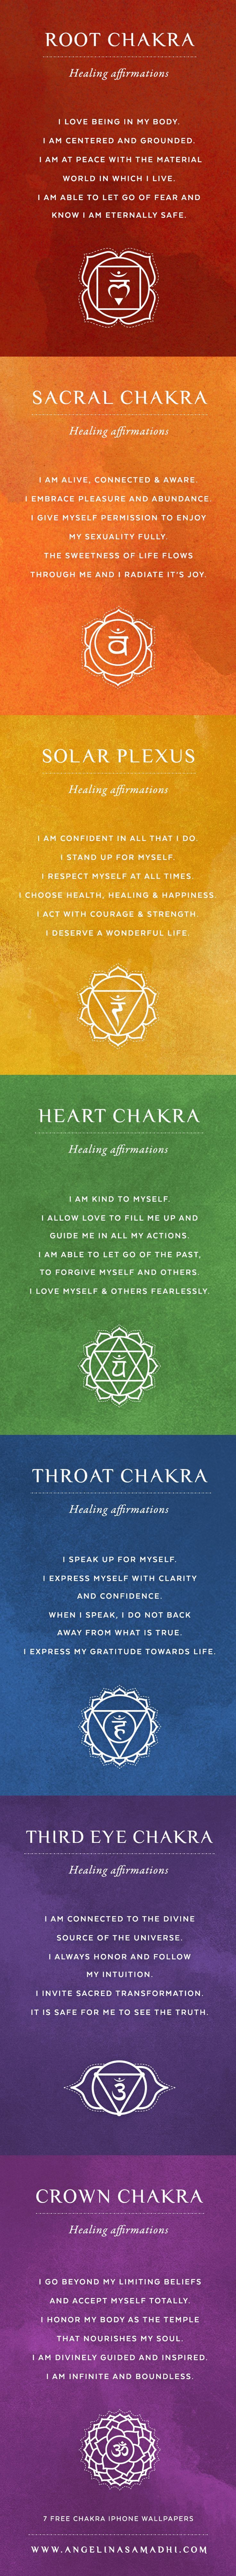 Chakra Affirmation Wallpapers ॐ Align your chakras through the conscious direction of your thoughts :) Root, Sacral, Solar Plexus, Heart, Throat, Third Eye, Crown